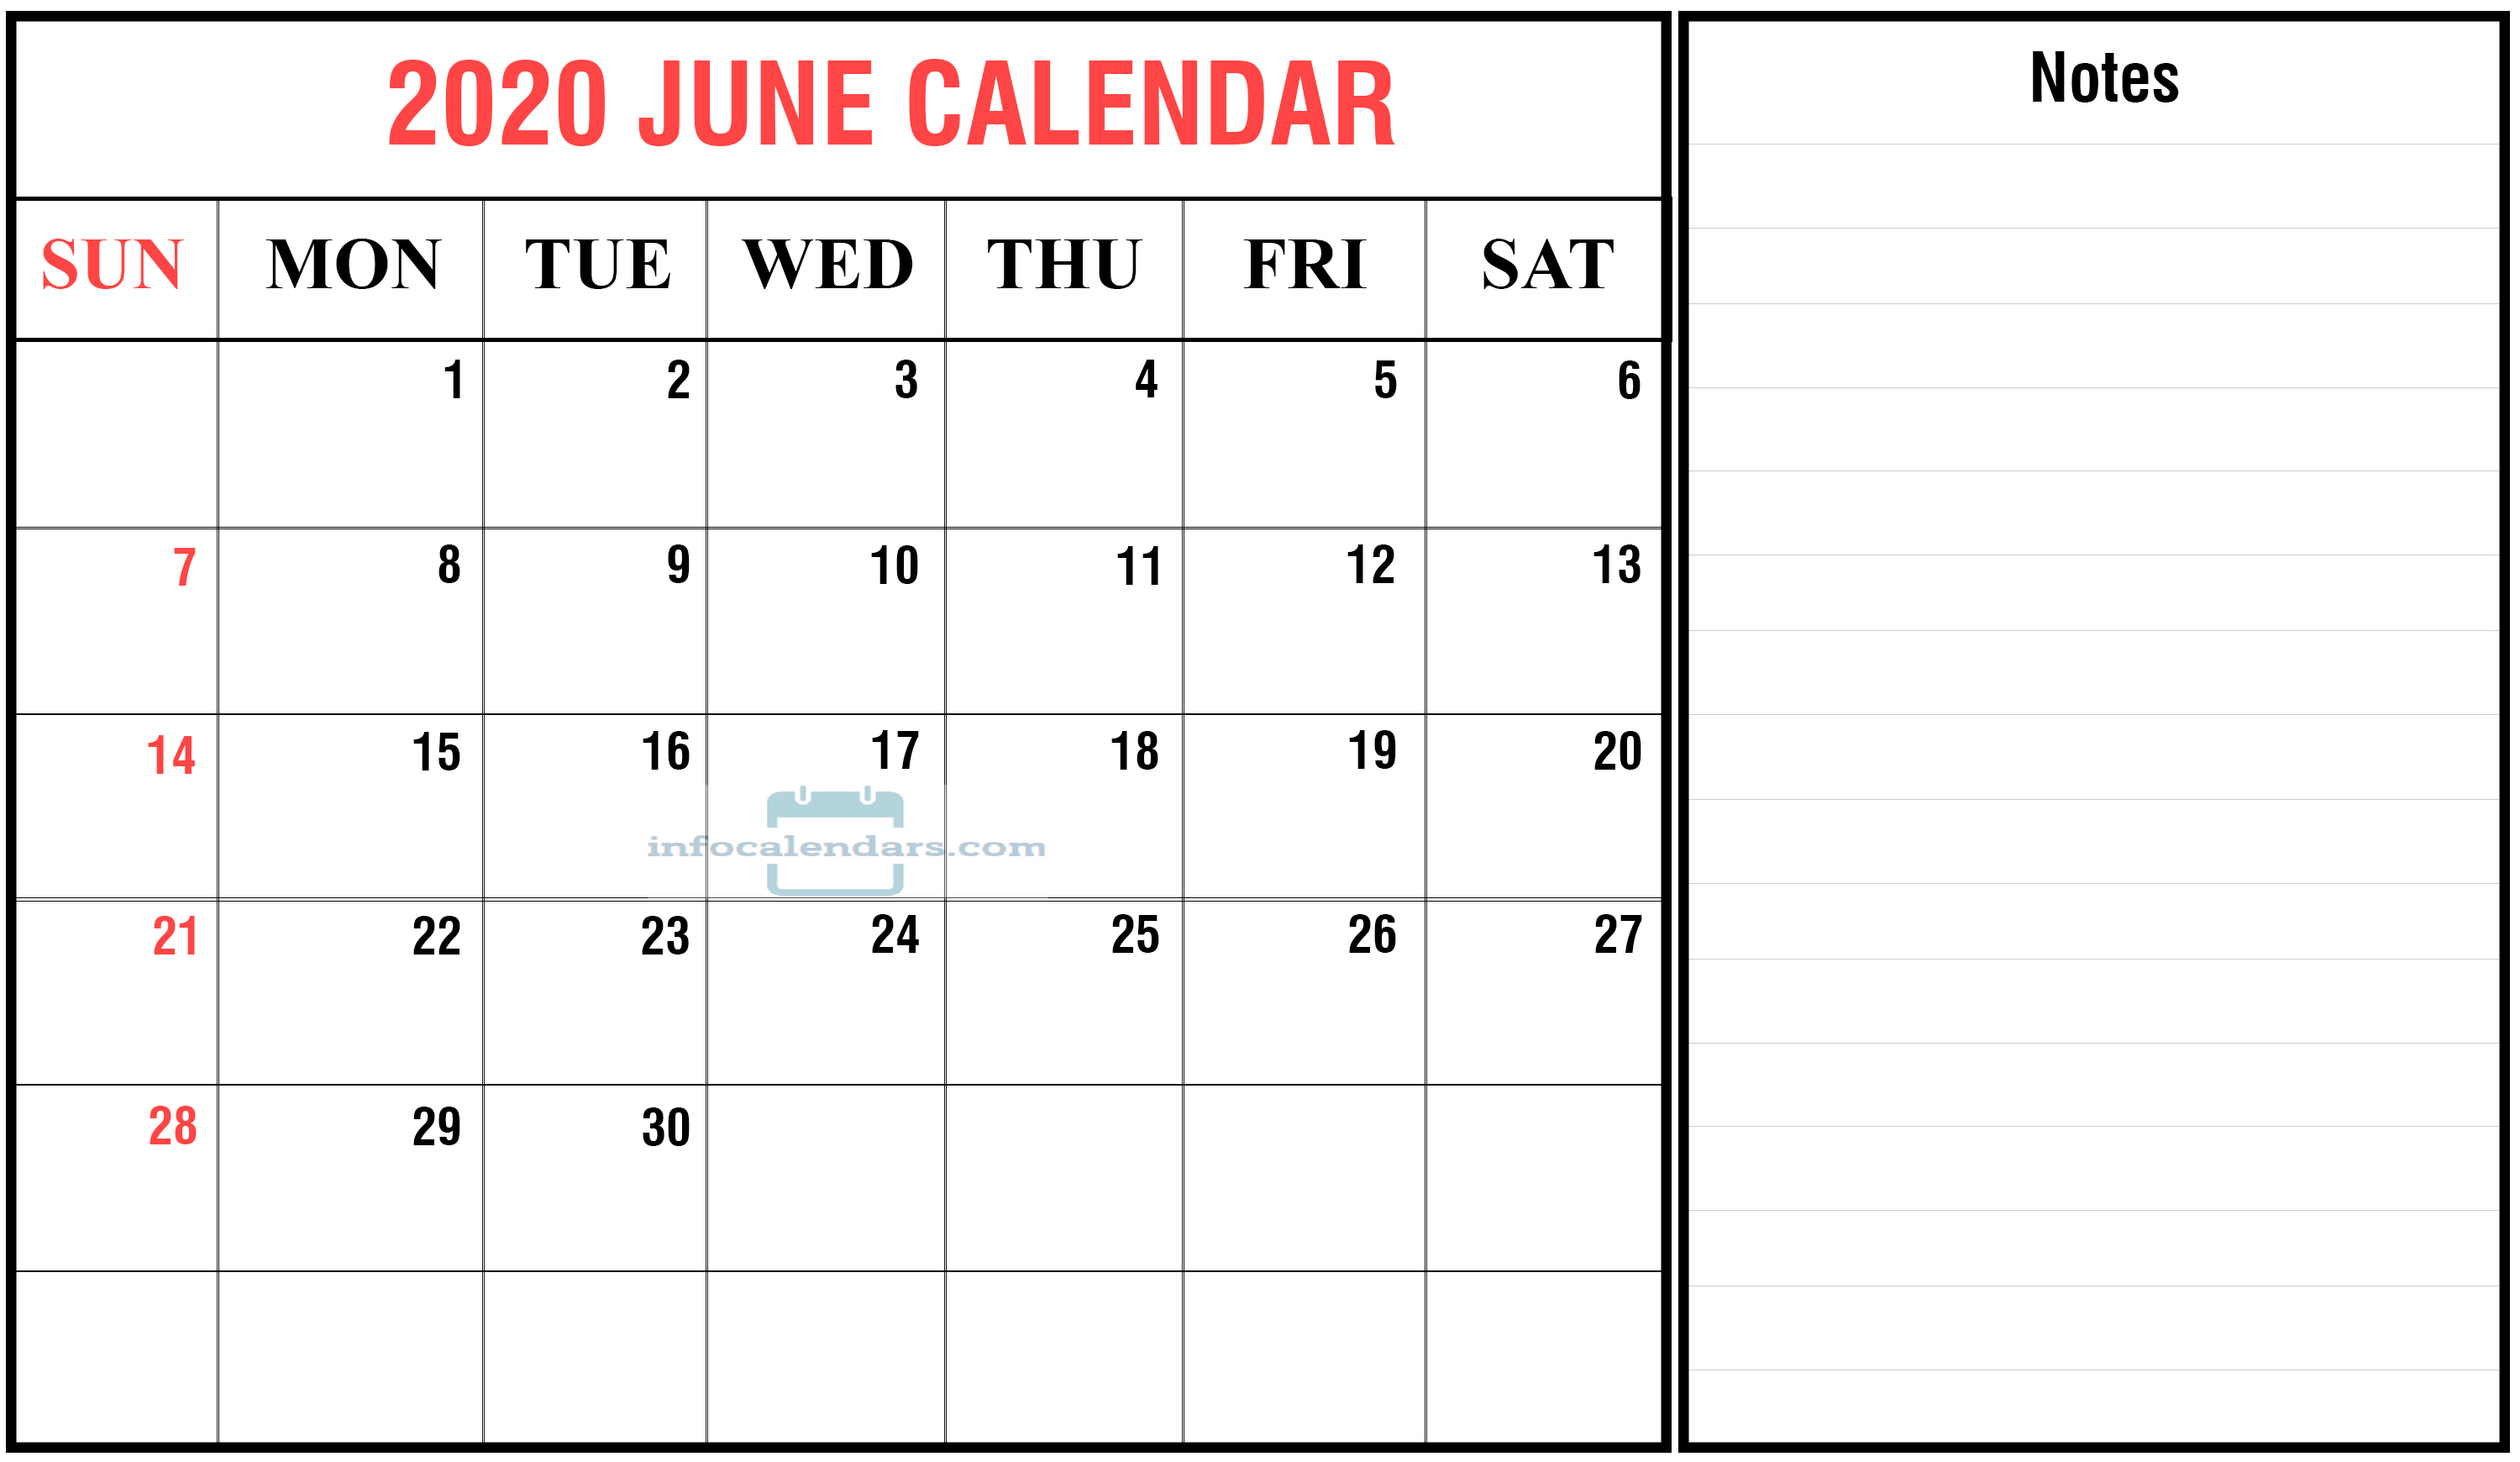 June 2020 Calendar With Holidays Download